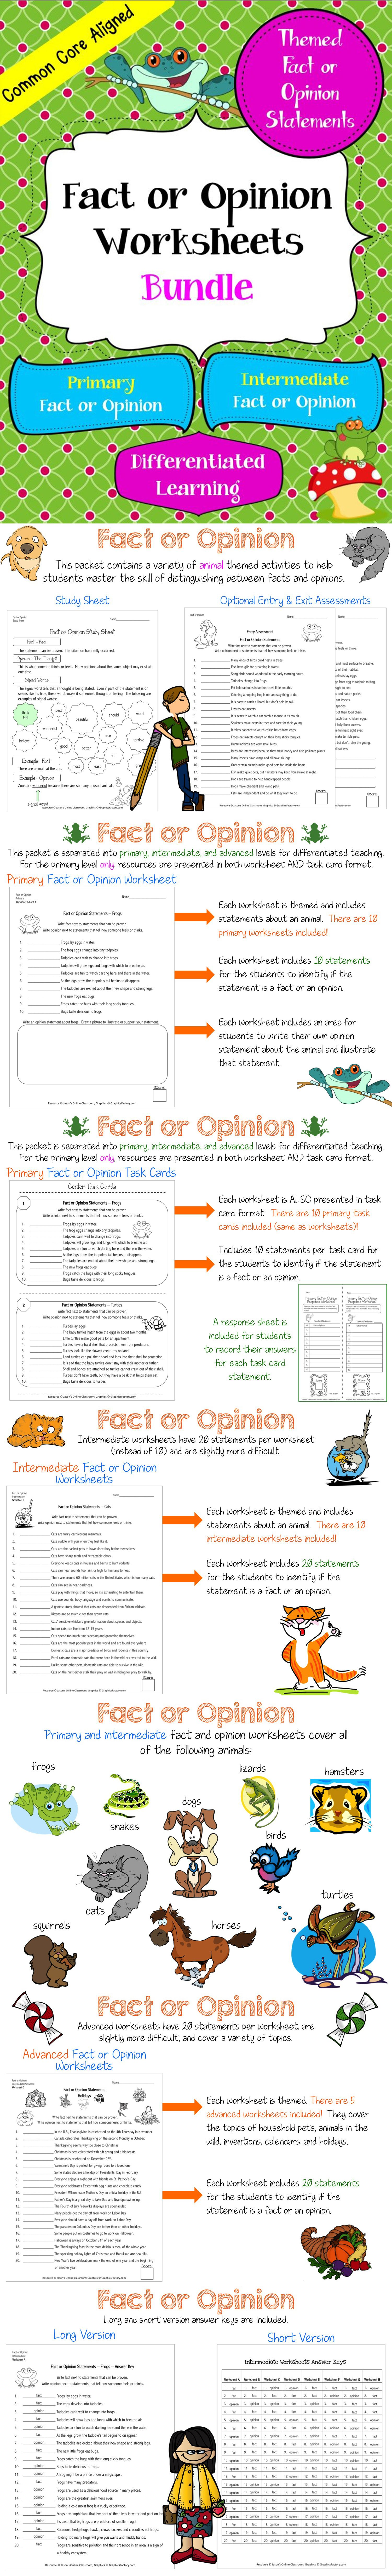 Fact And Opinion Fact And Opinion Worksheet Fact And Opinion Facts